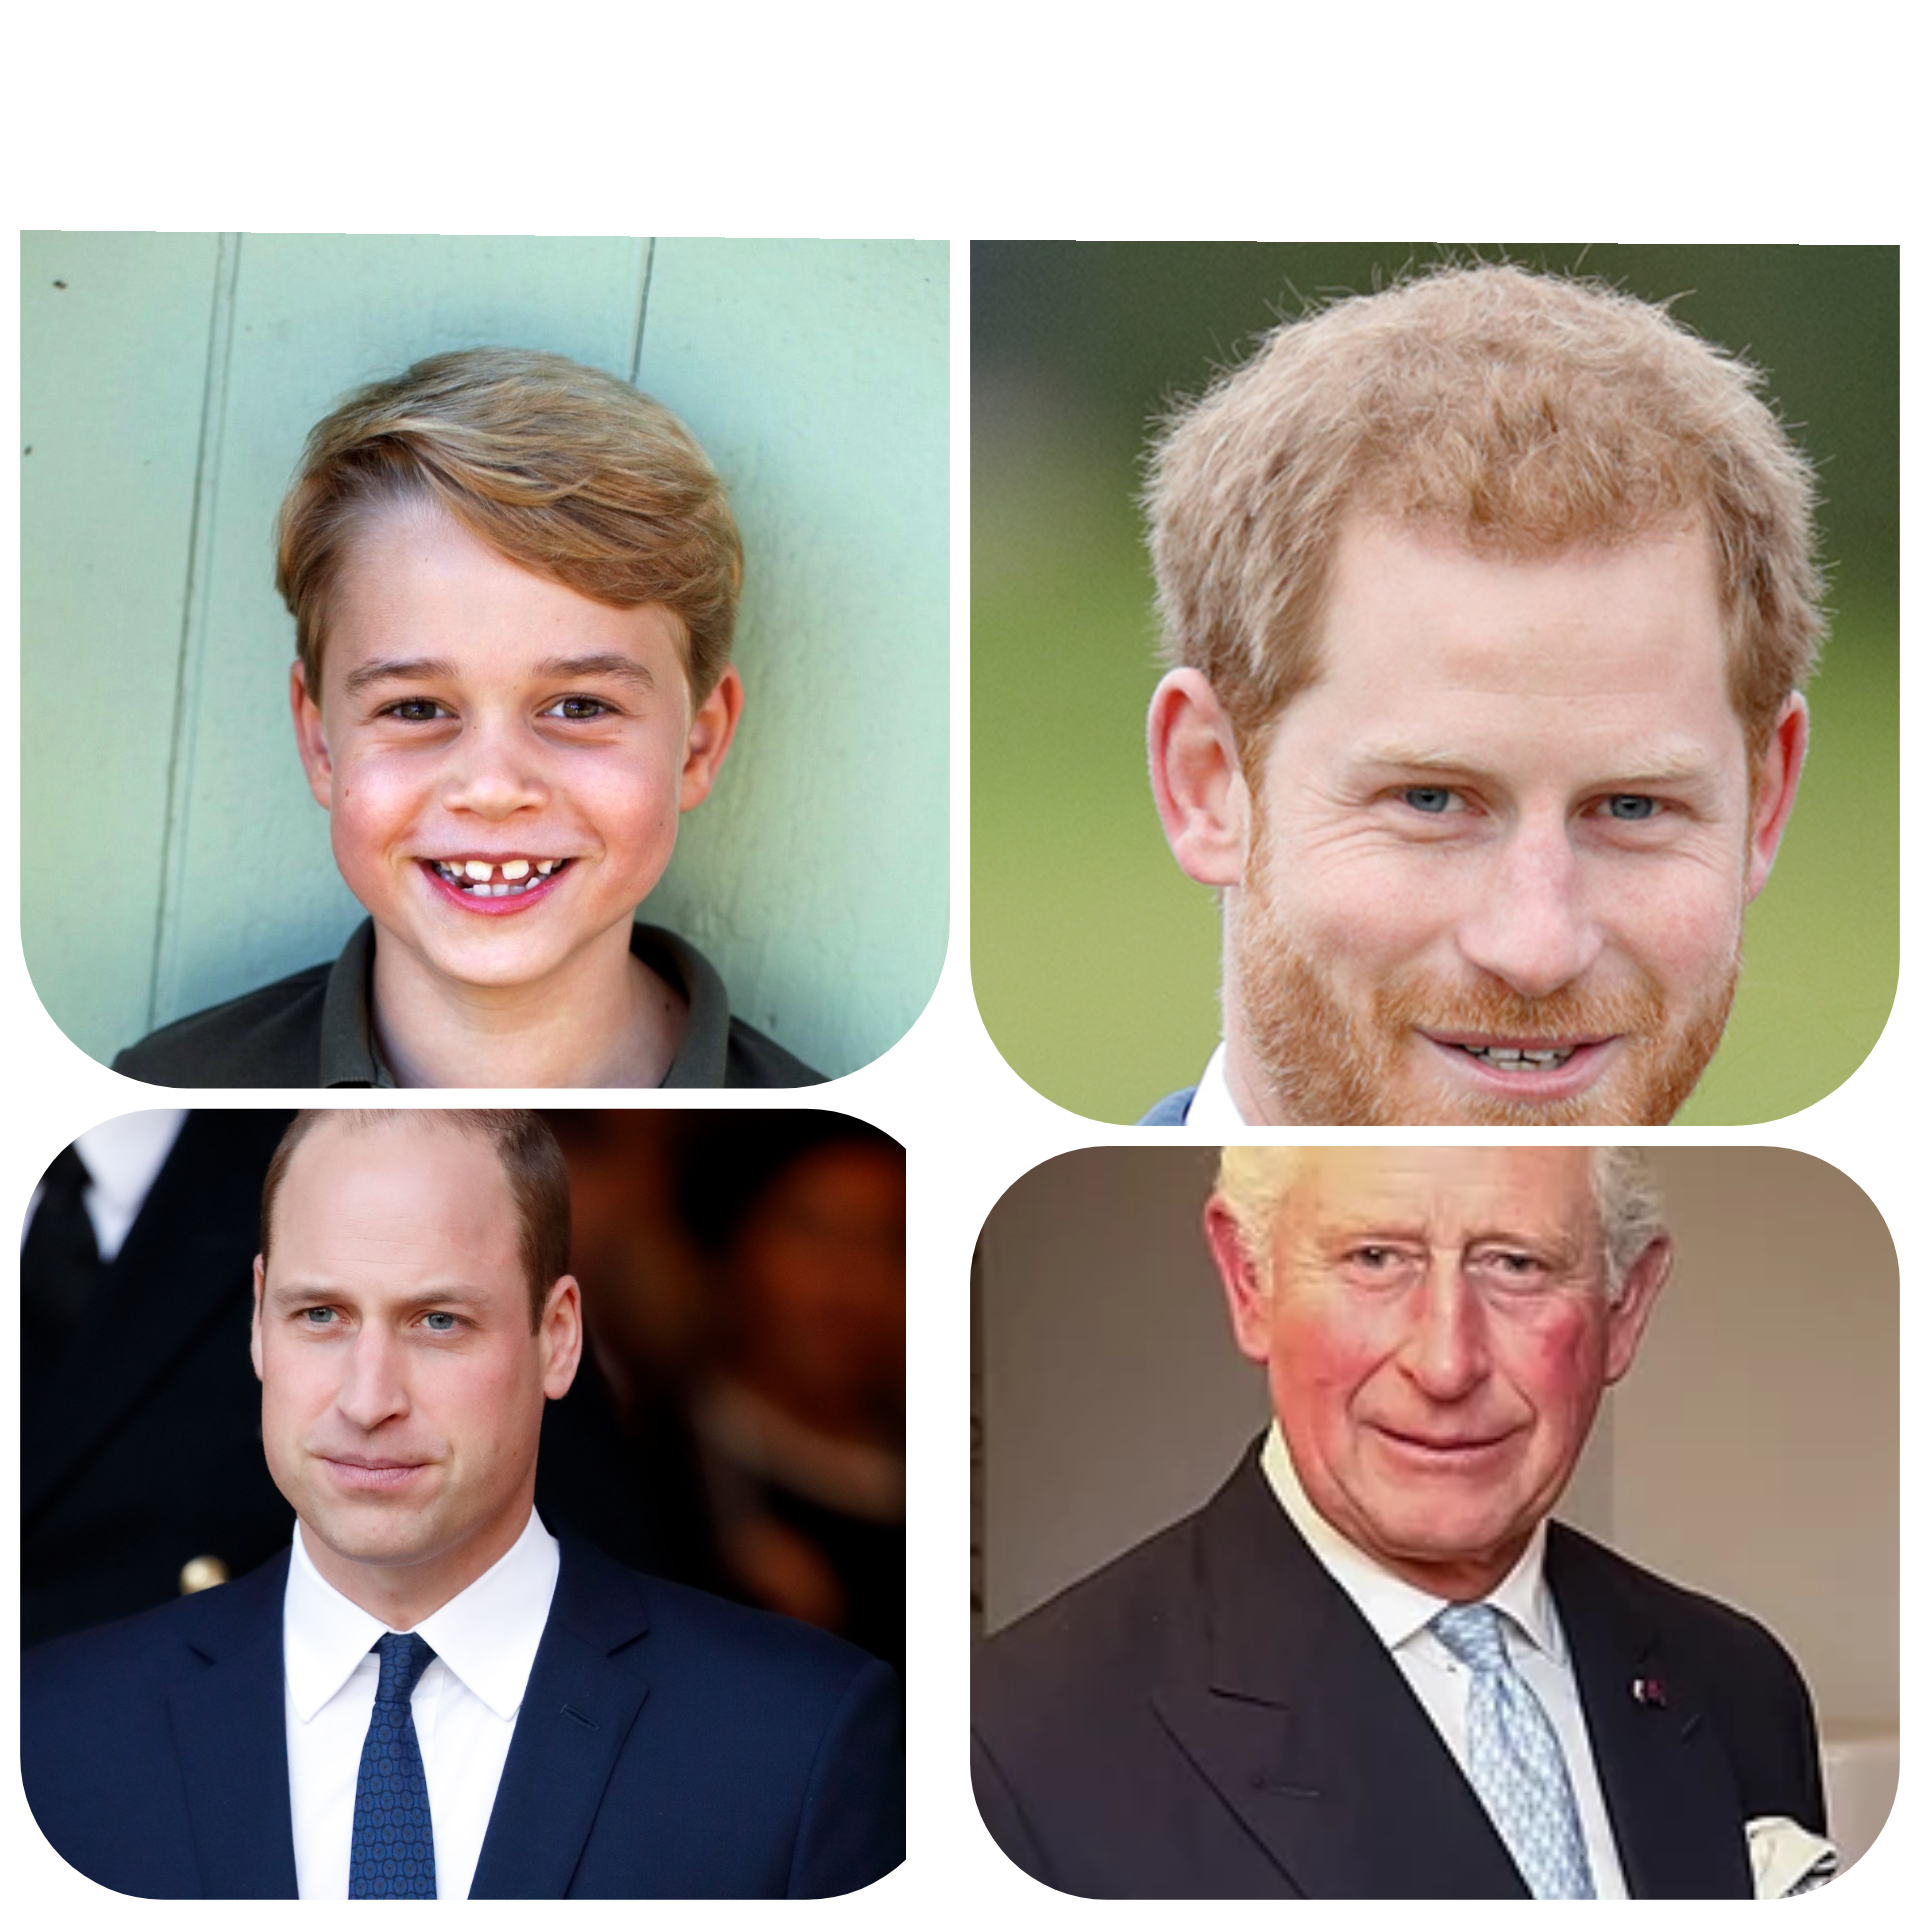 Prince George, Prince Harry, Prince William every day in the Press – Does this sound Just or Fair to you in any way? – Wake up now. And Boycott MEDIA MONOPOLIES for a Better future